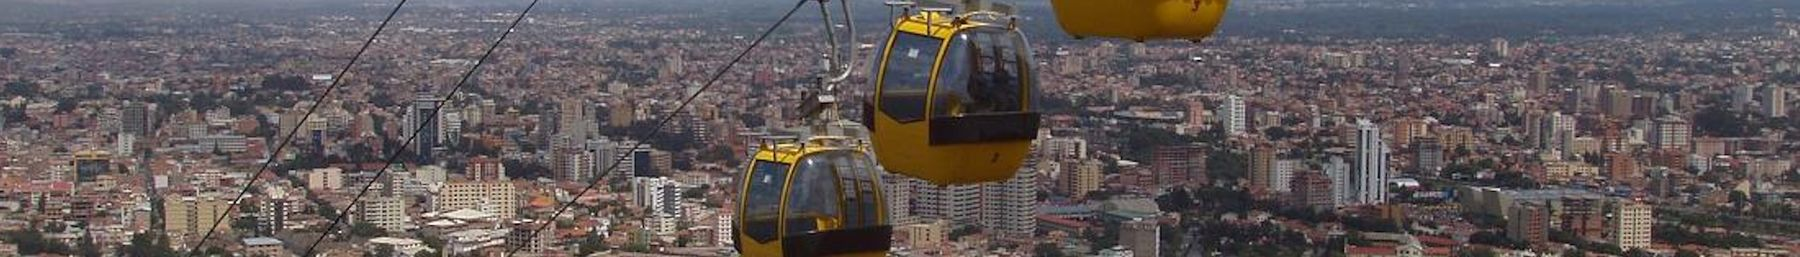 WV banner Cochabamba department Cable cars above Cochabamba.jpg